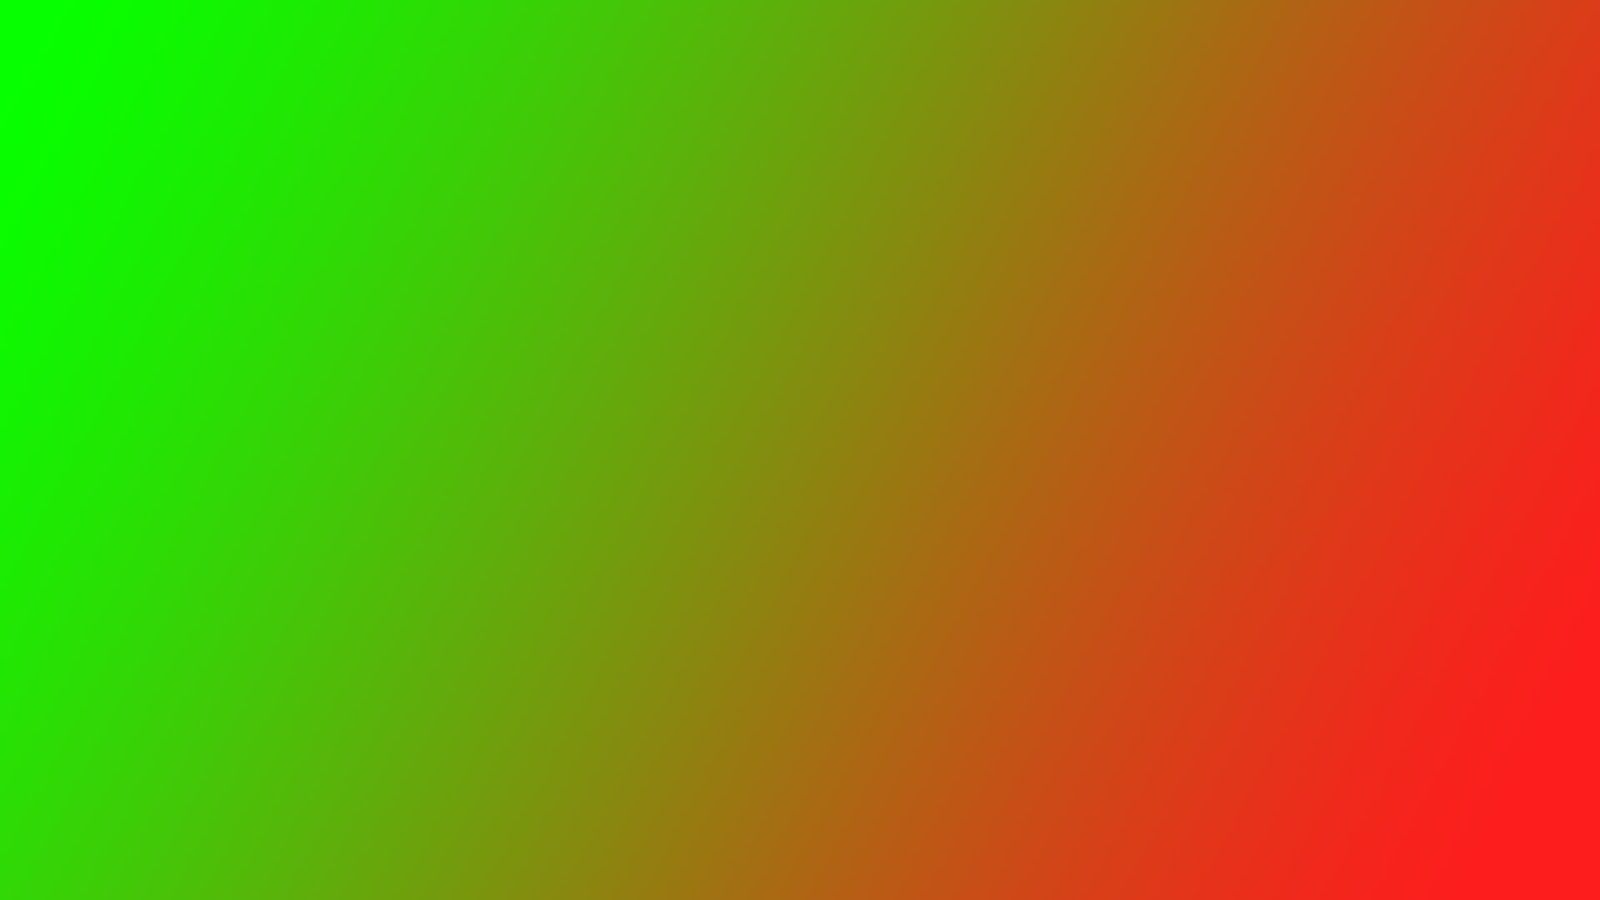 Gradient Image Red Green Fd1d1d 06ff00 Green Wallpaper Colorful Wallpaper Free Background Images